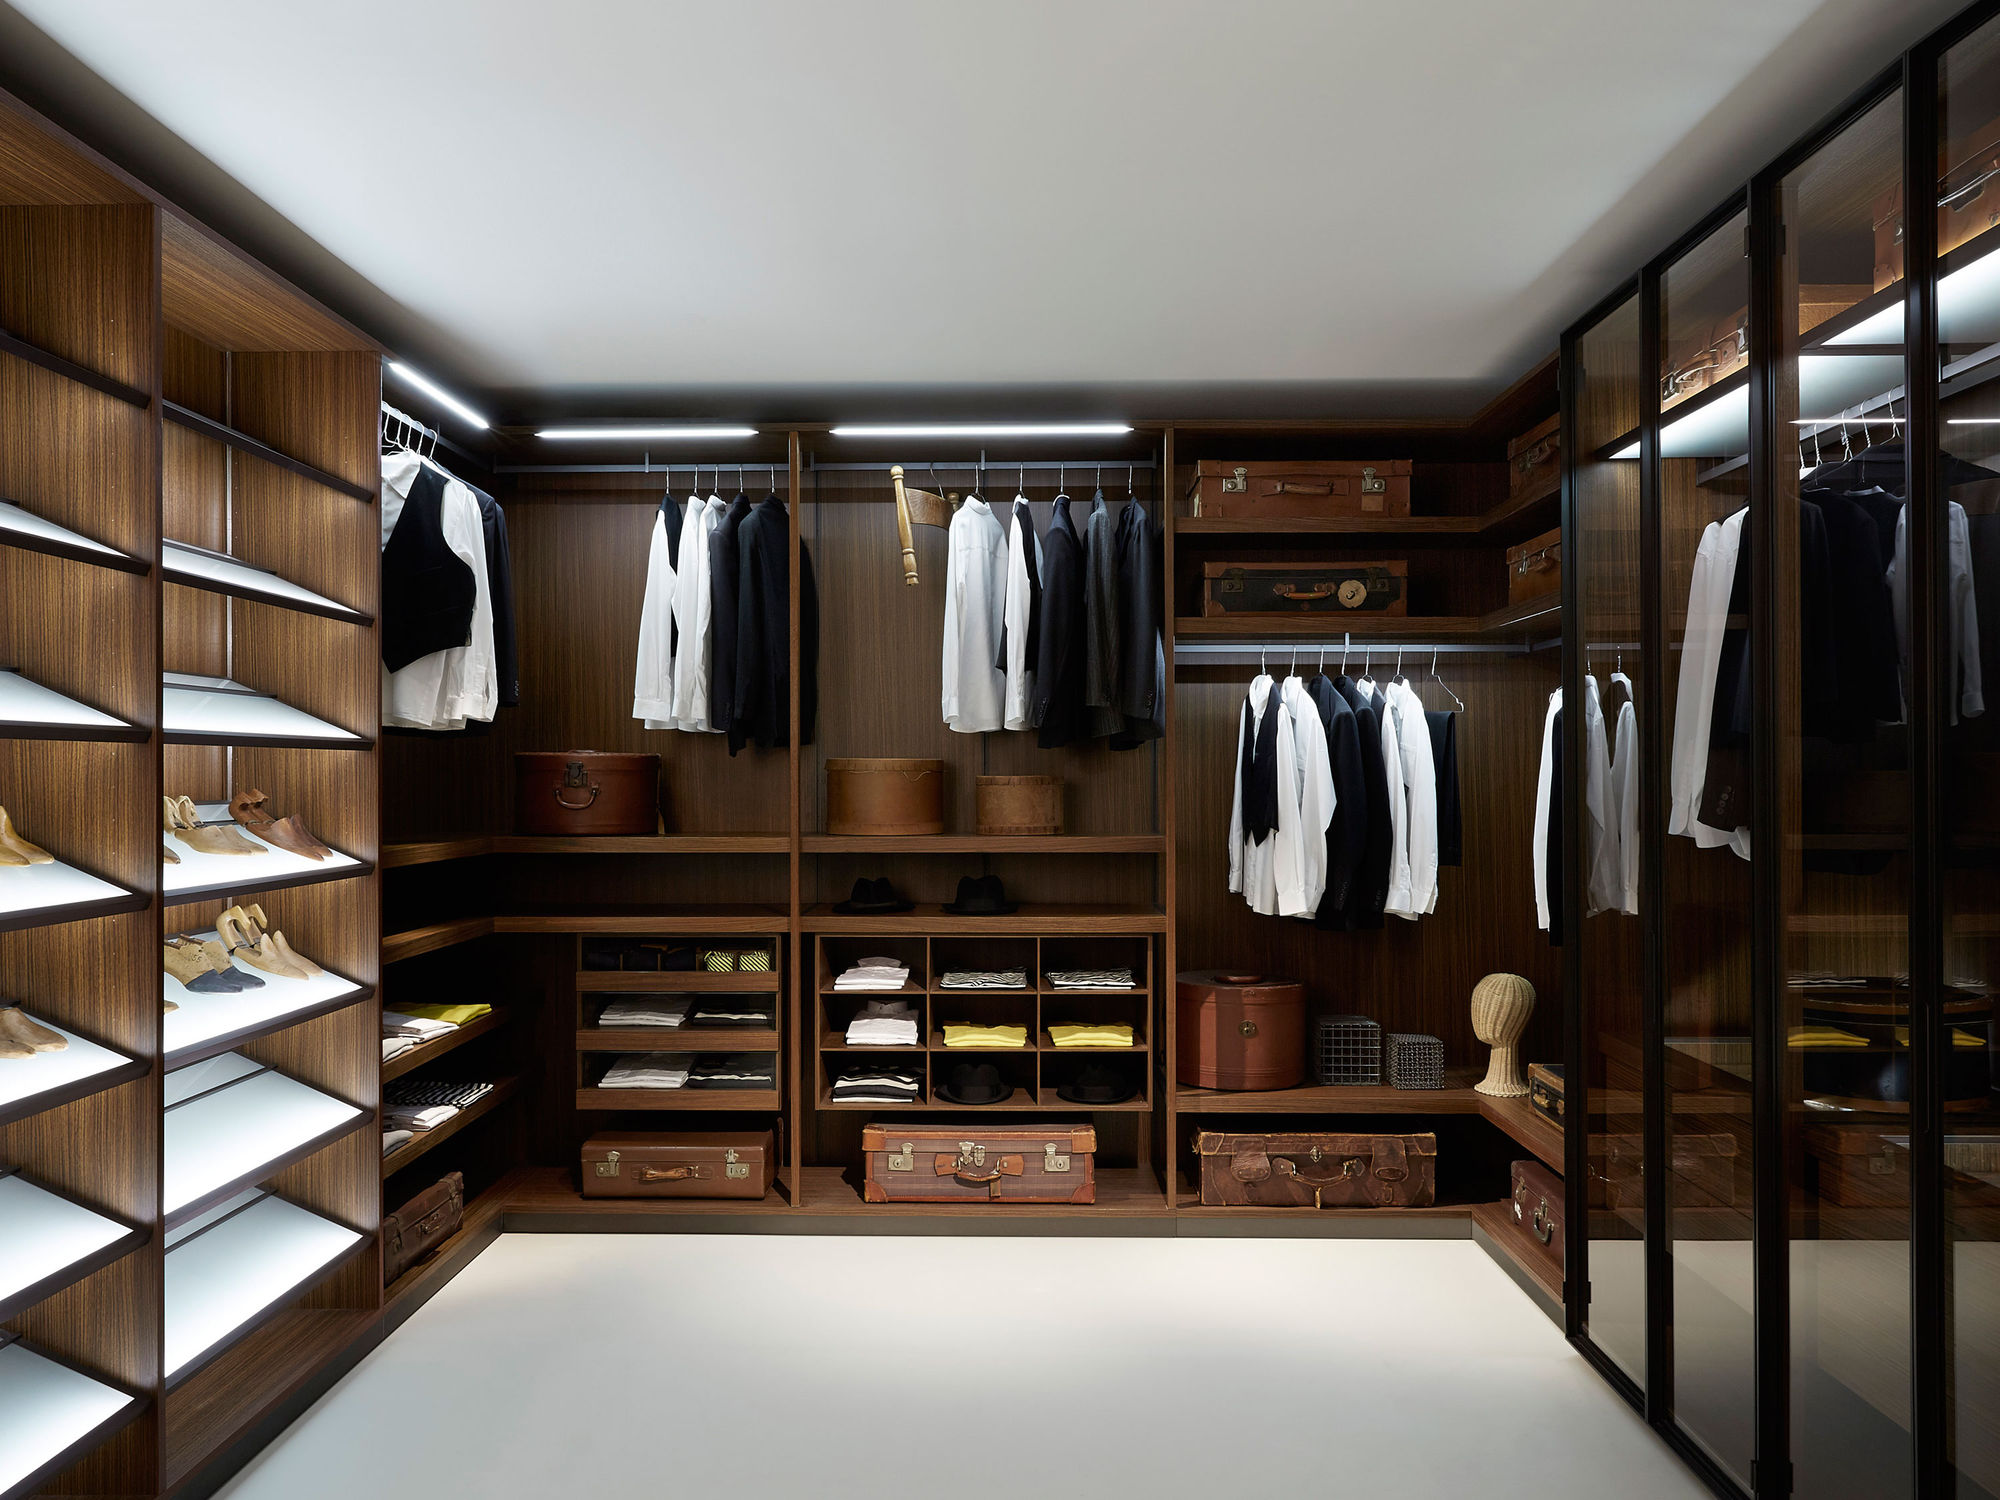 Elegant Wardrobe Closet Common Types Designs (View 2 of 10)